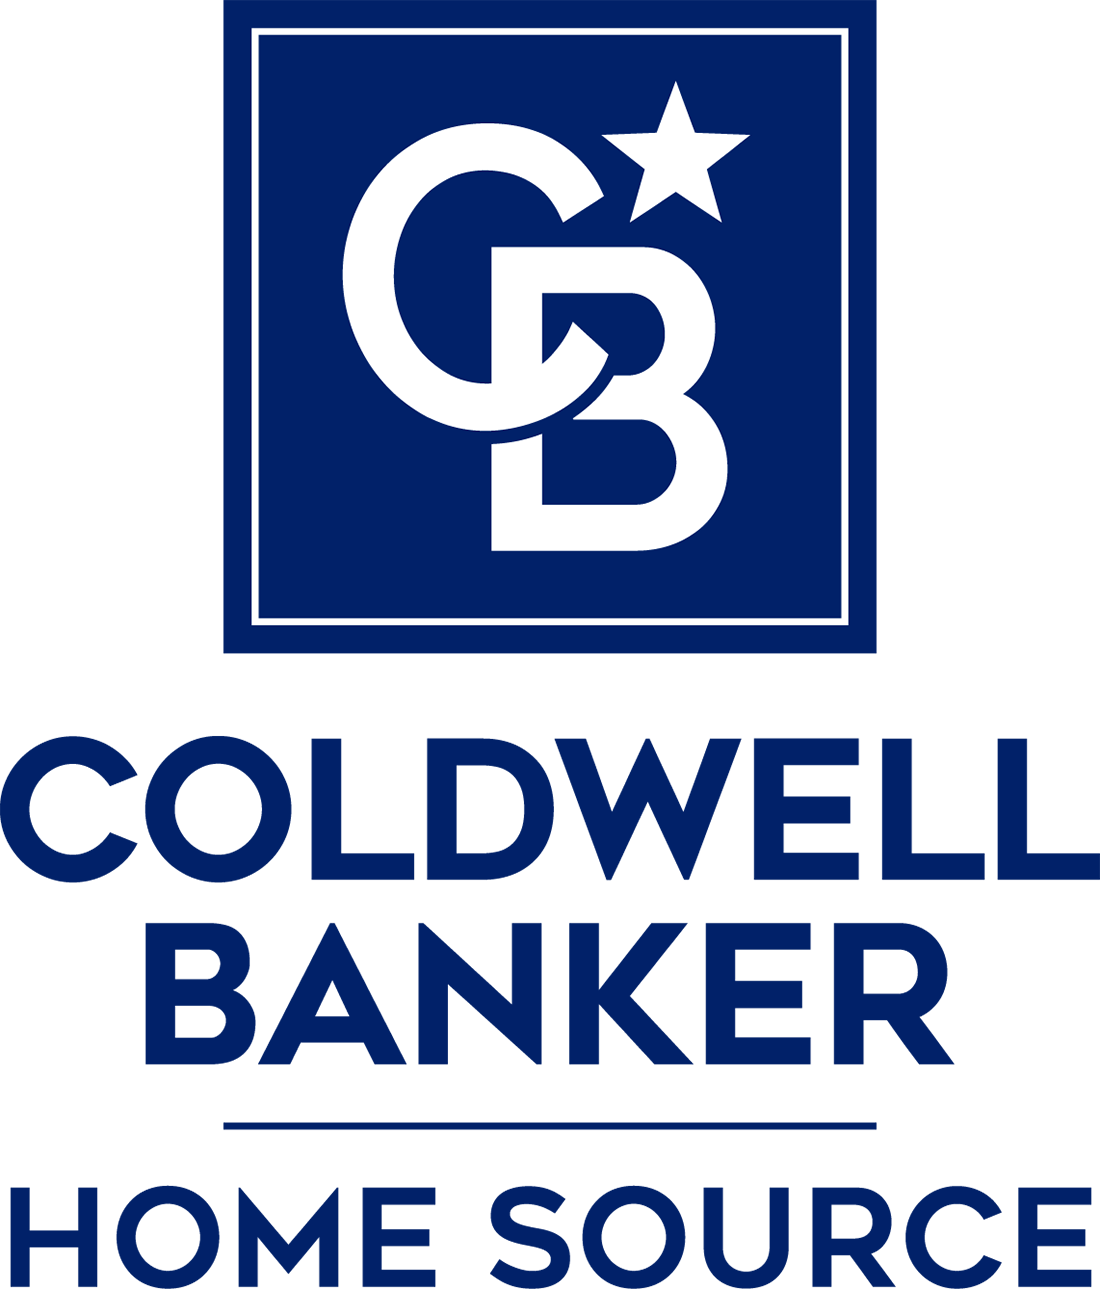 Kevin Chen - Coldwell Banker Home Source Logo